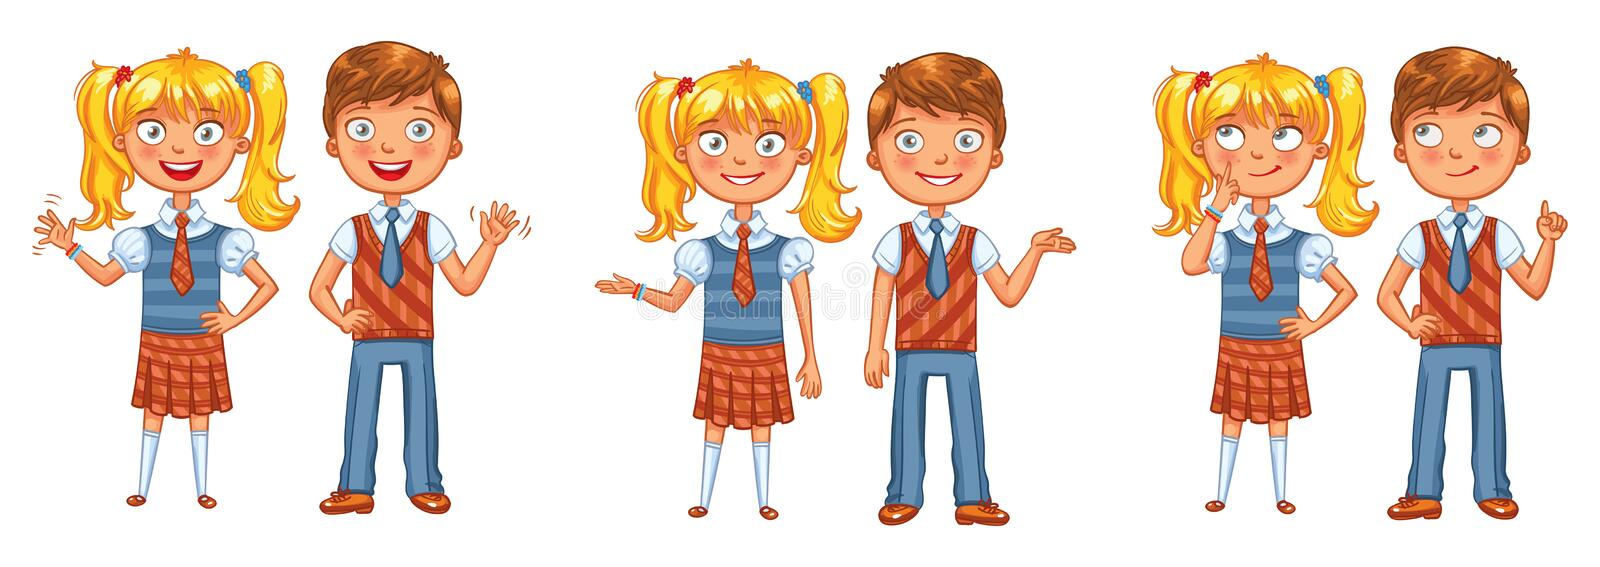 Back to school. Boys and girls posing together. Funny cartoon character. Vector illustration. Isolated on white background stock illustration